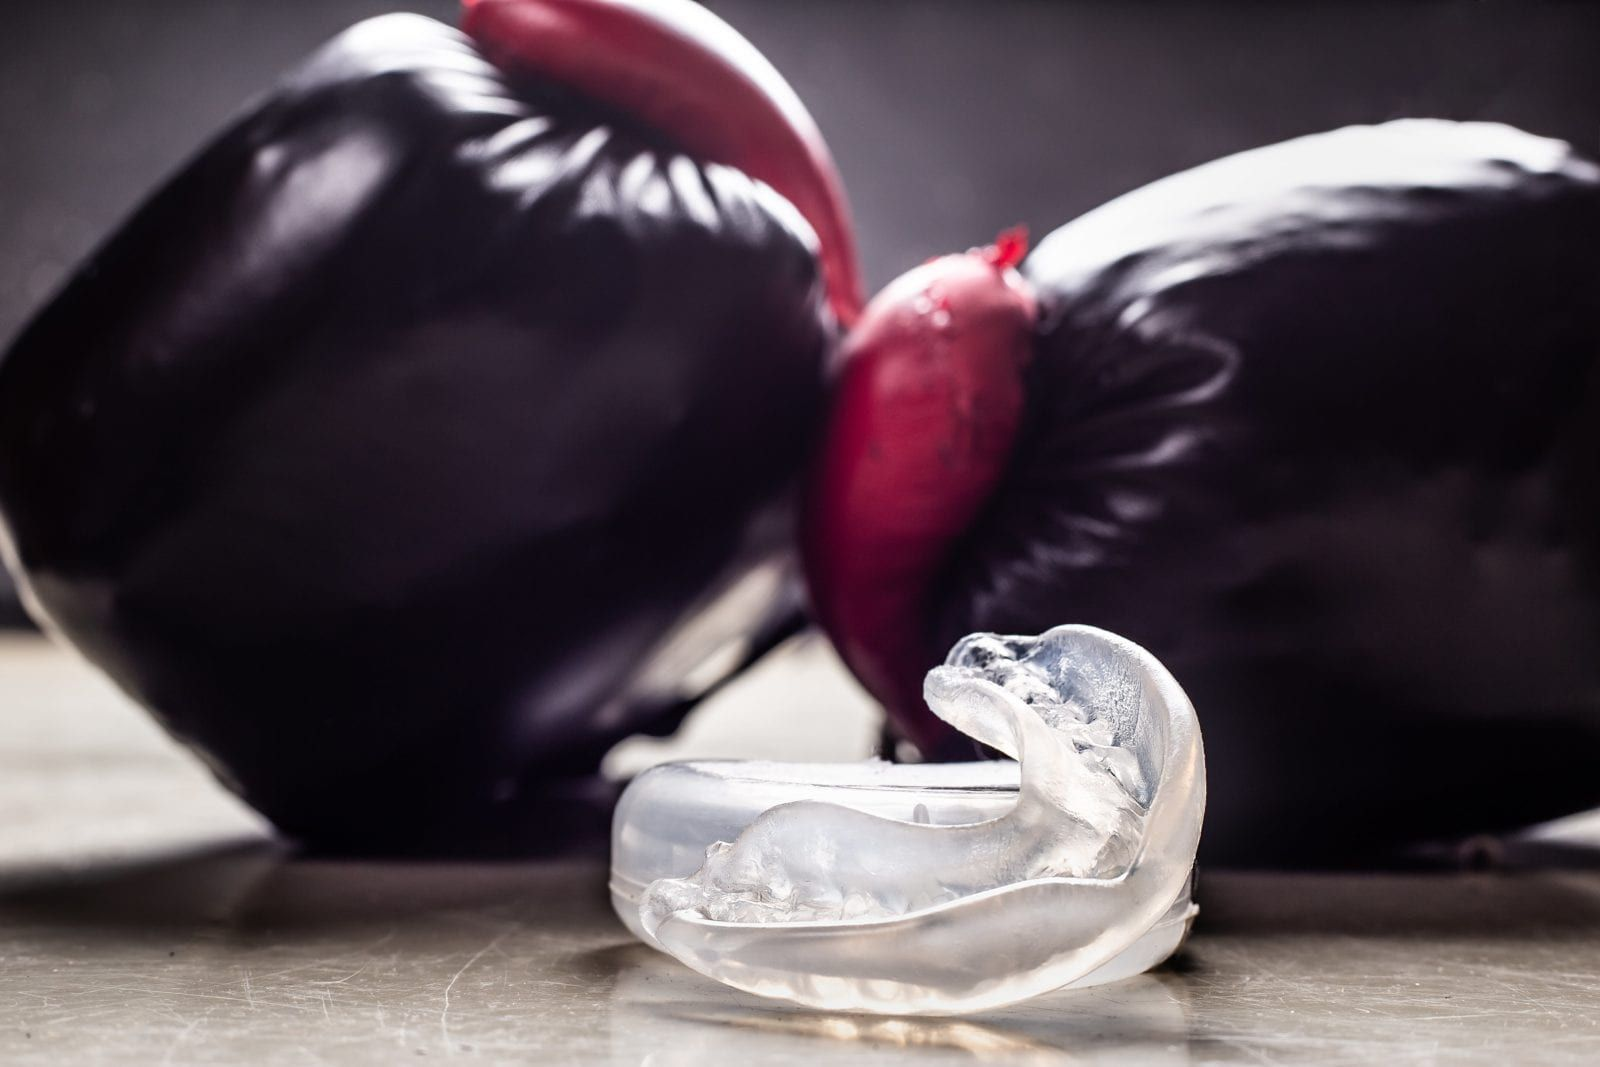 boxing gloves with a mouthguard in the middle